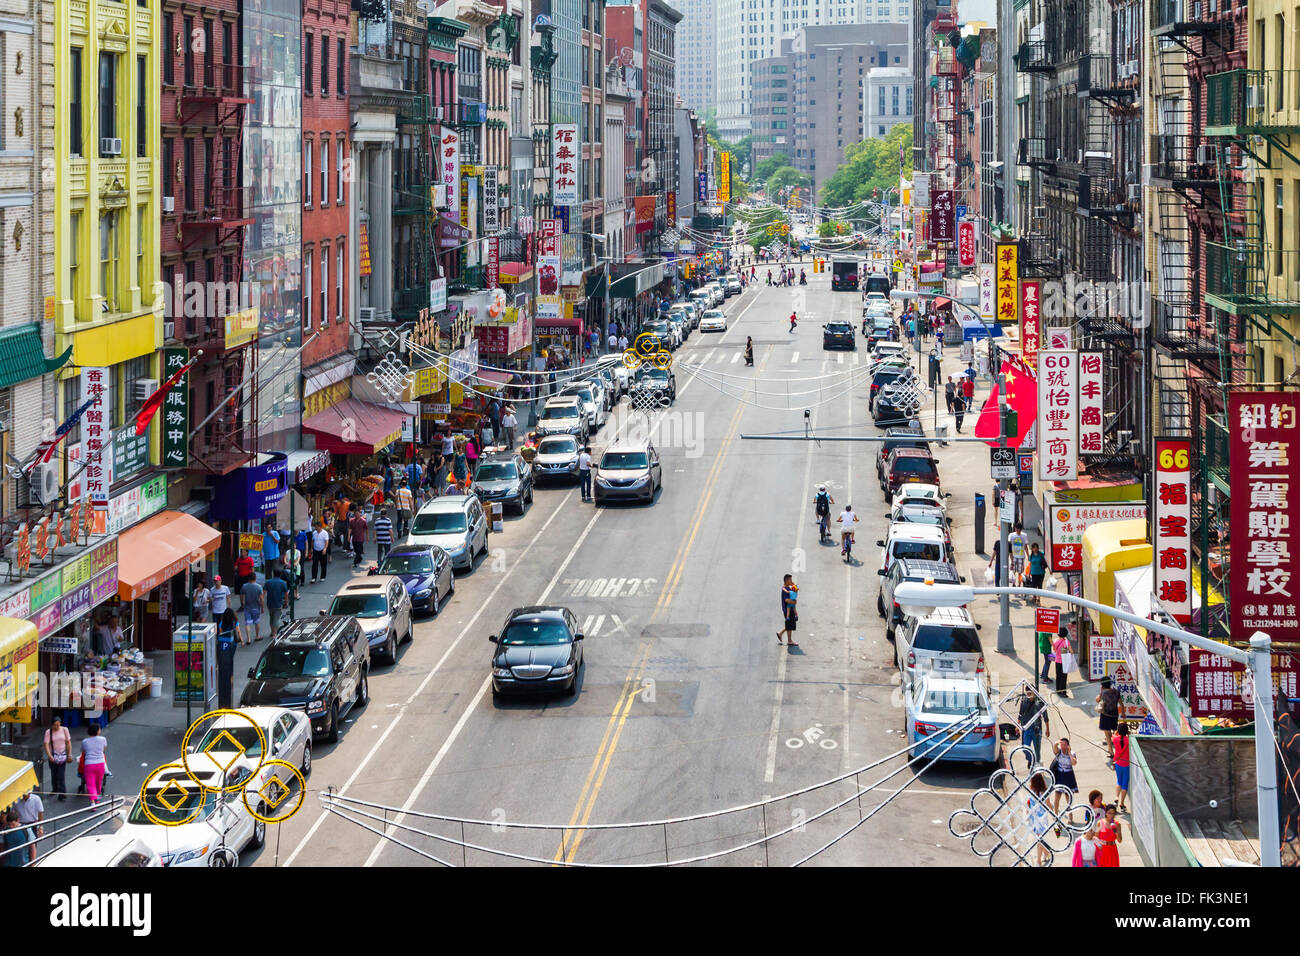 NEW YORK CITY - JULY 2015: Tourists shop at businesses along a busy street in historic Chinatown during 4th of July Stock Photo